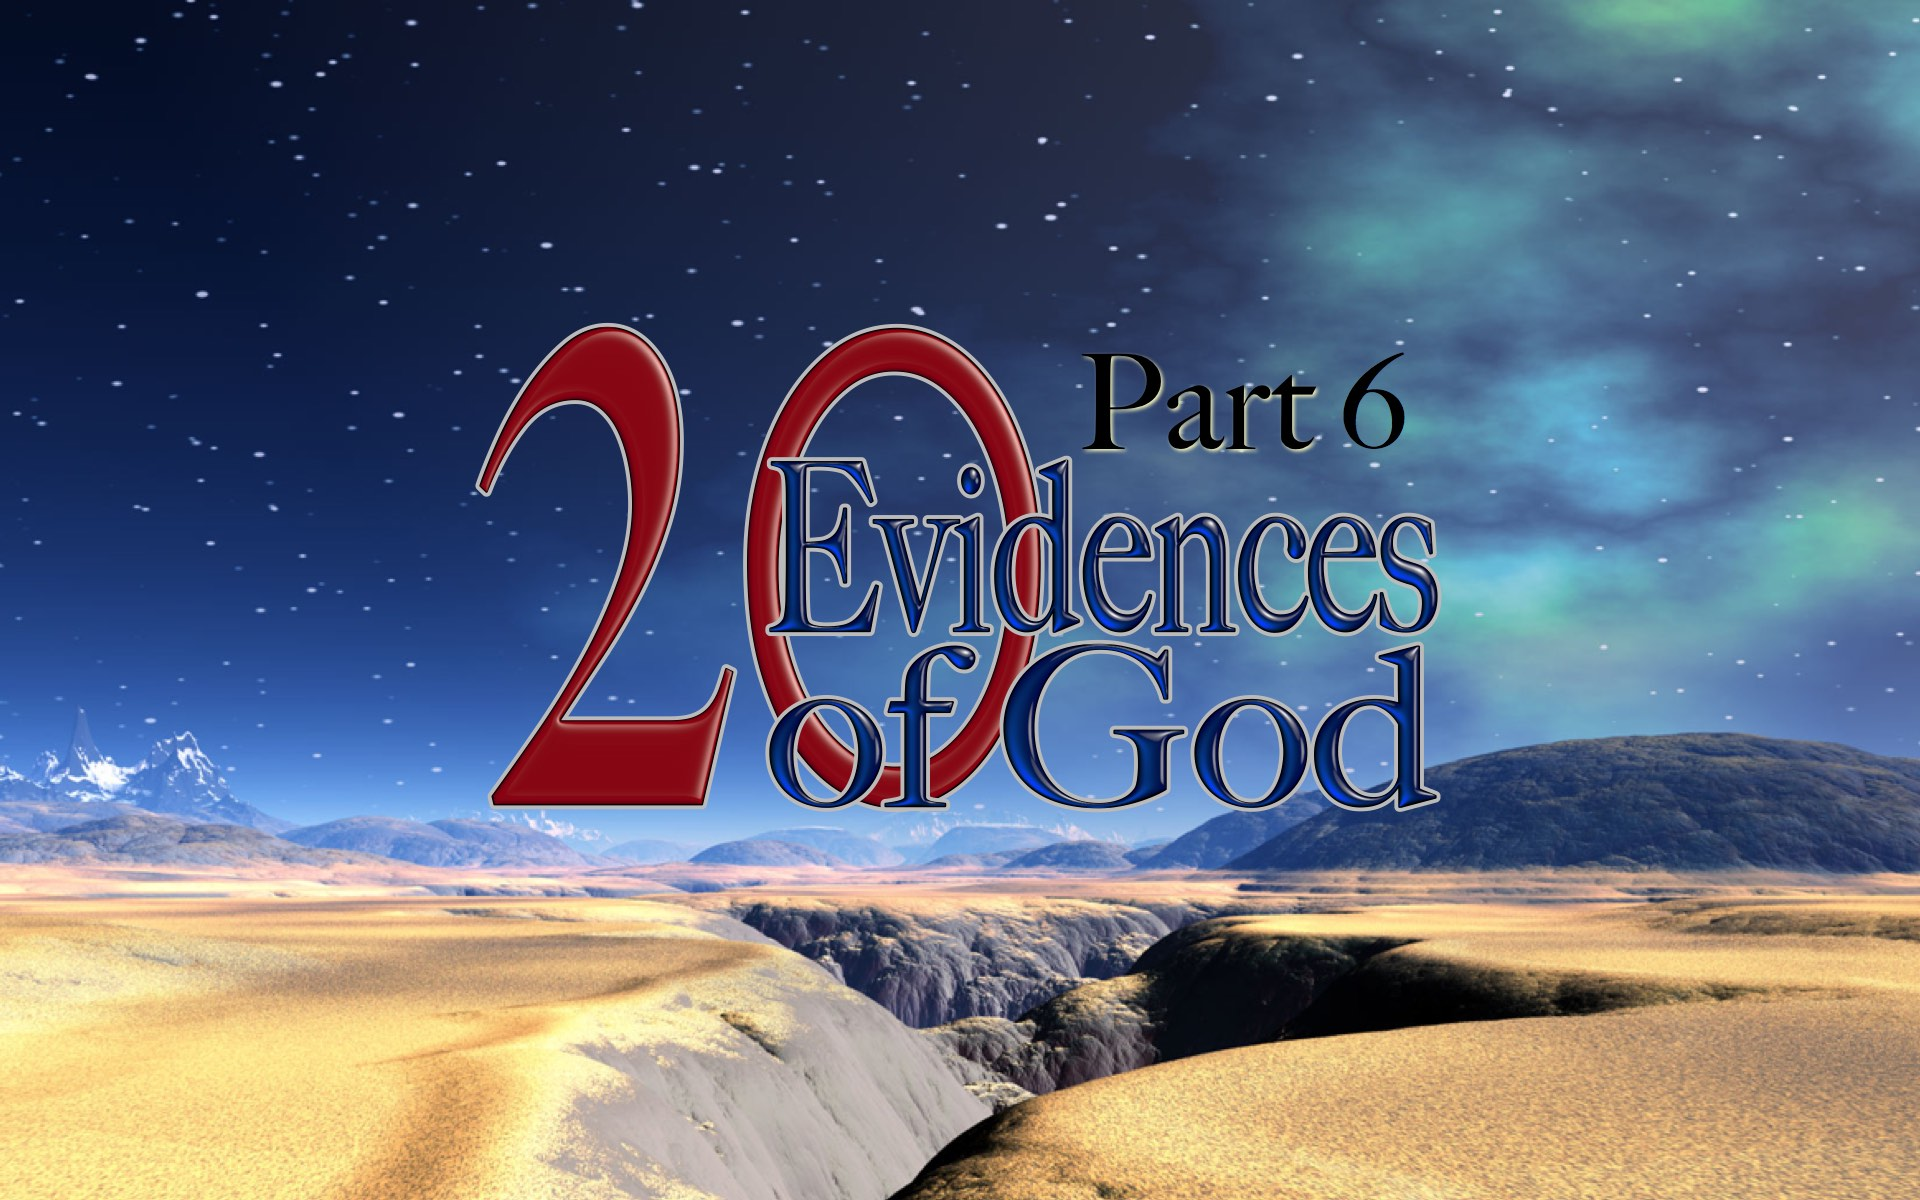 20 Evidences of God Part 6